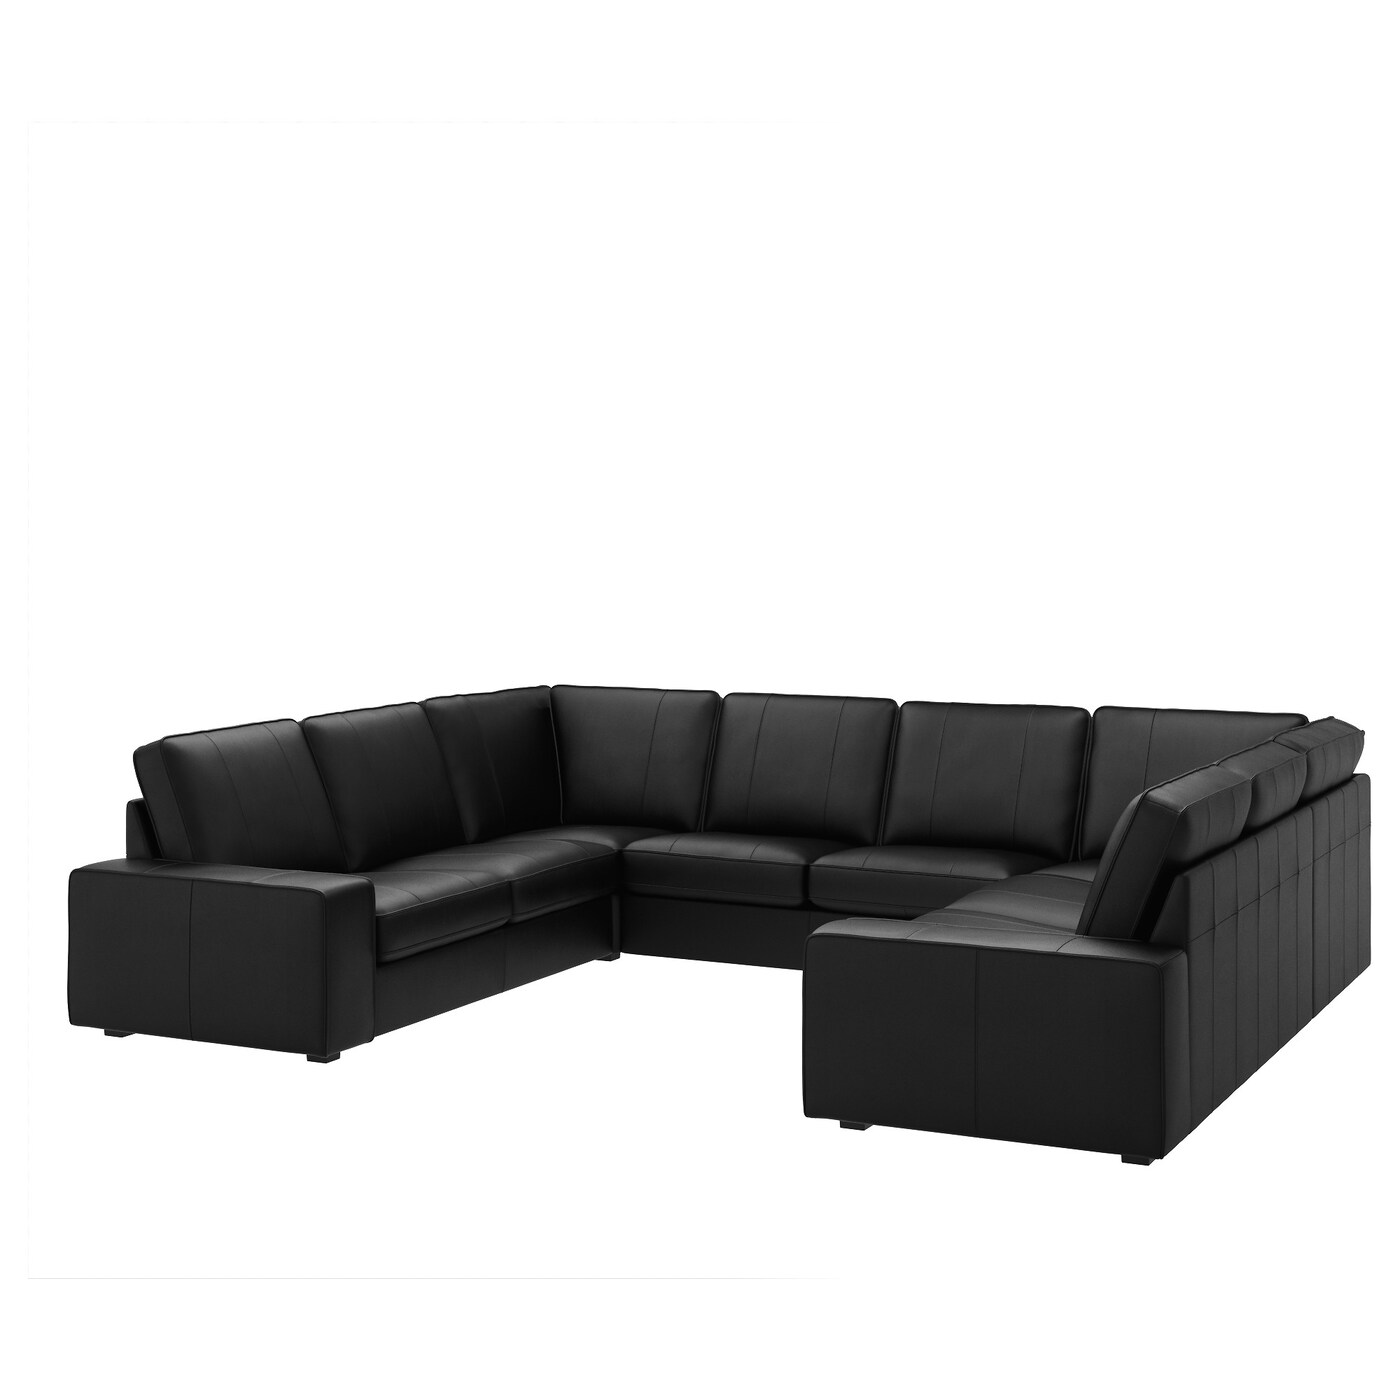 ikea kivik sofa ushaped 10 year guarantee read about the terms in